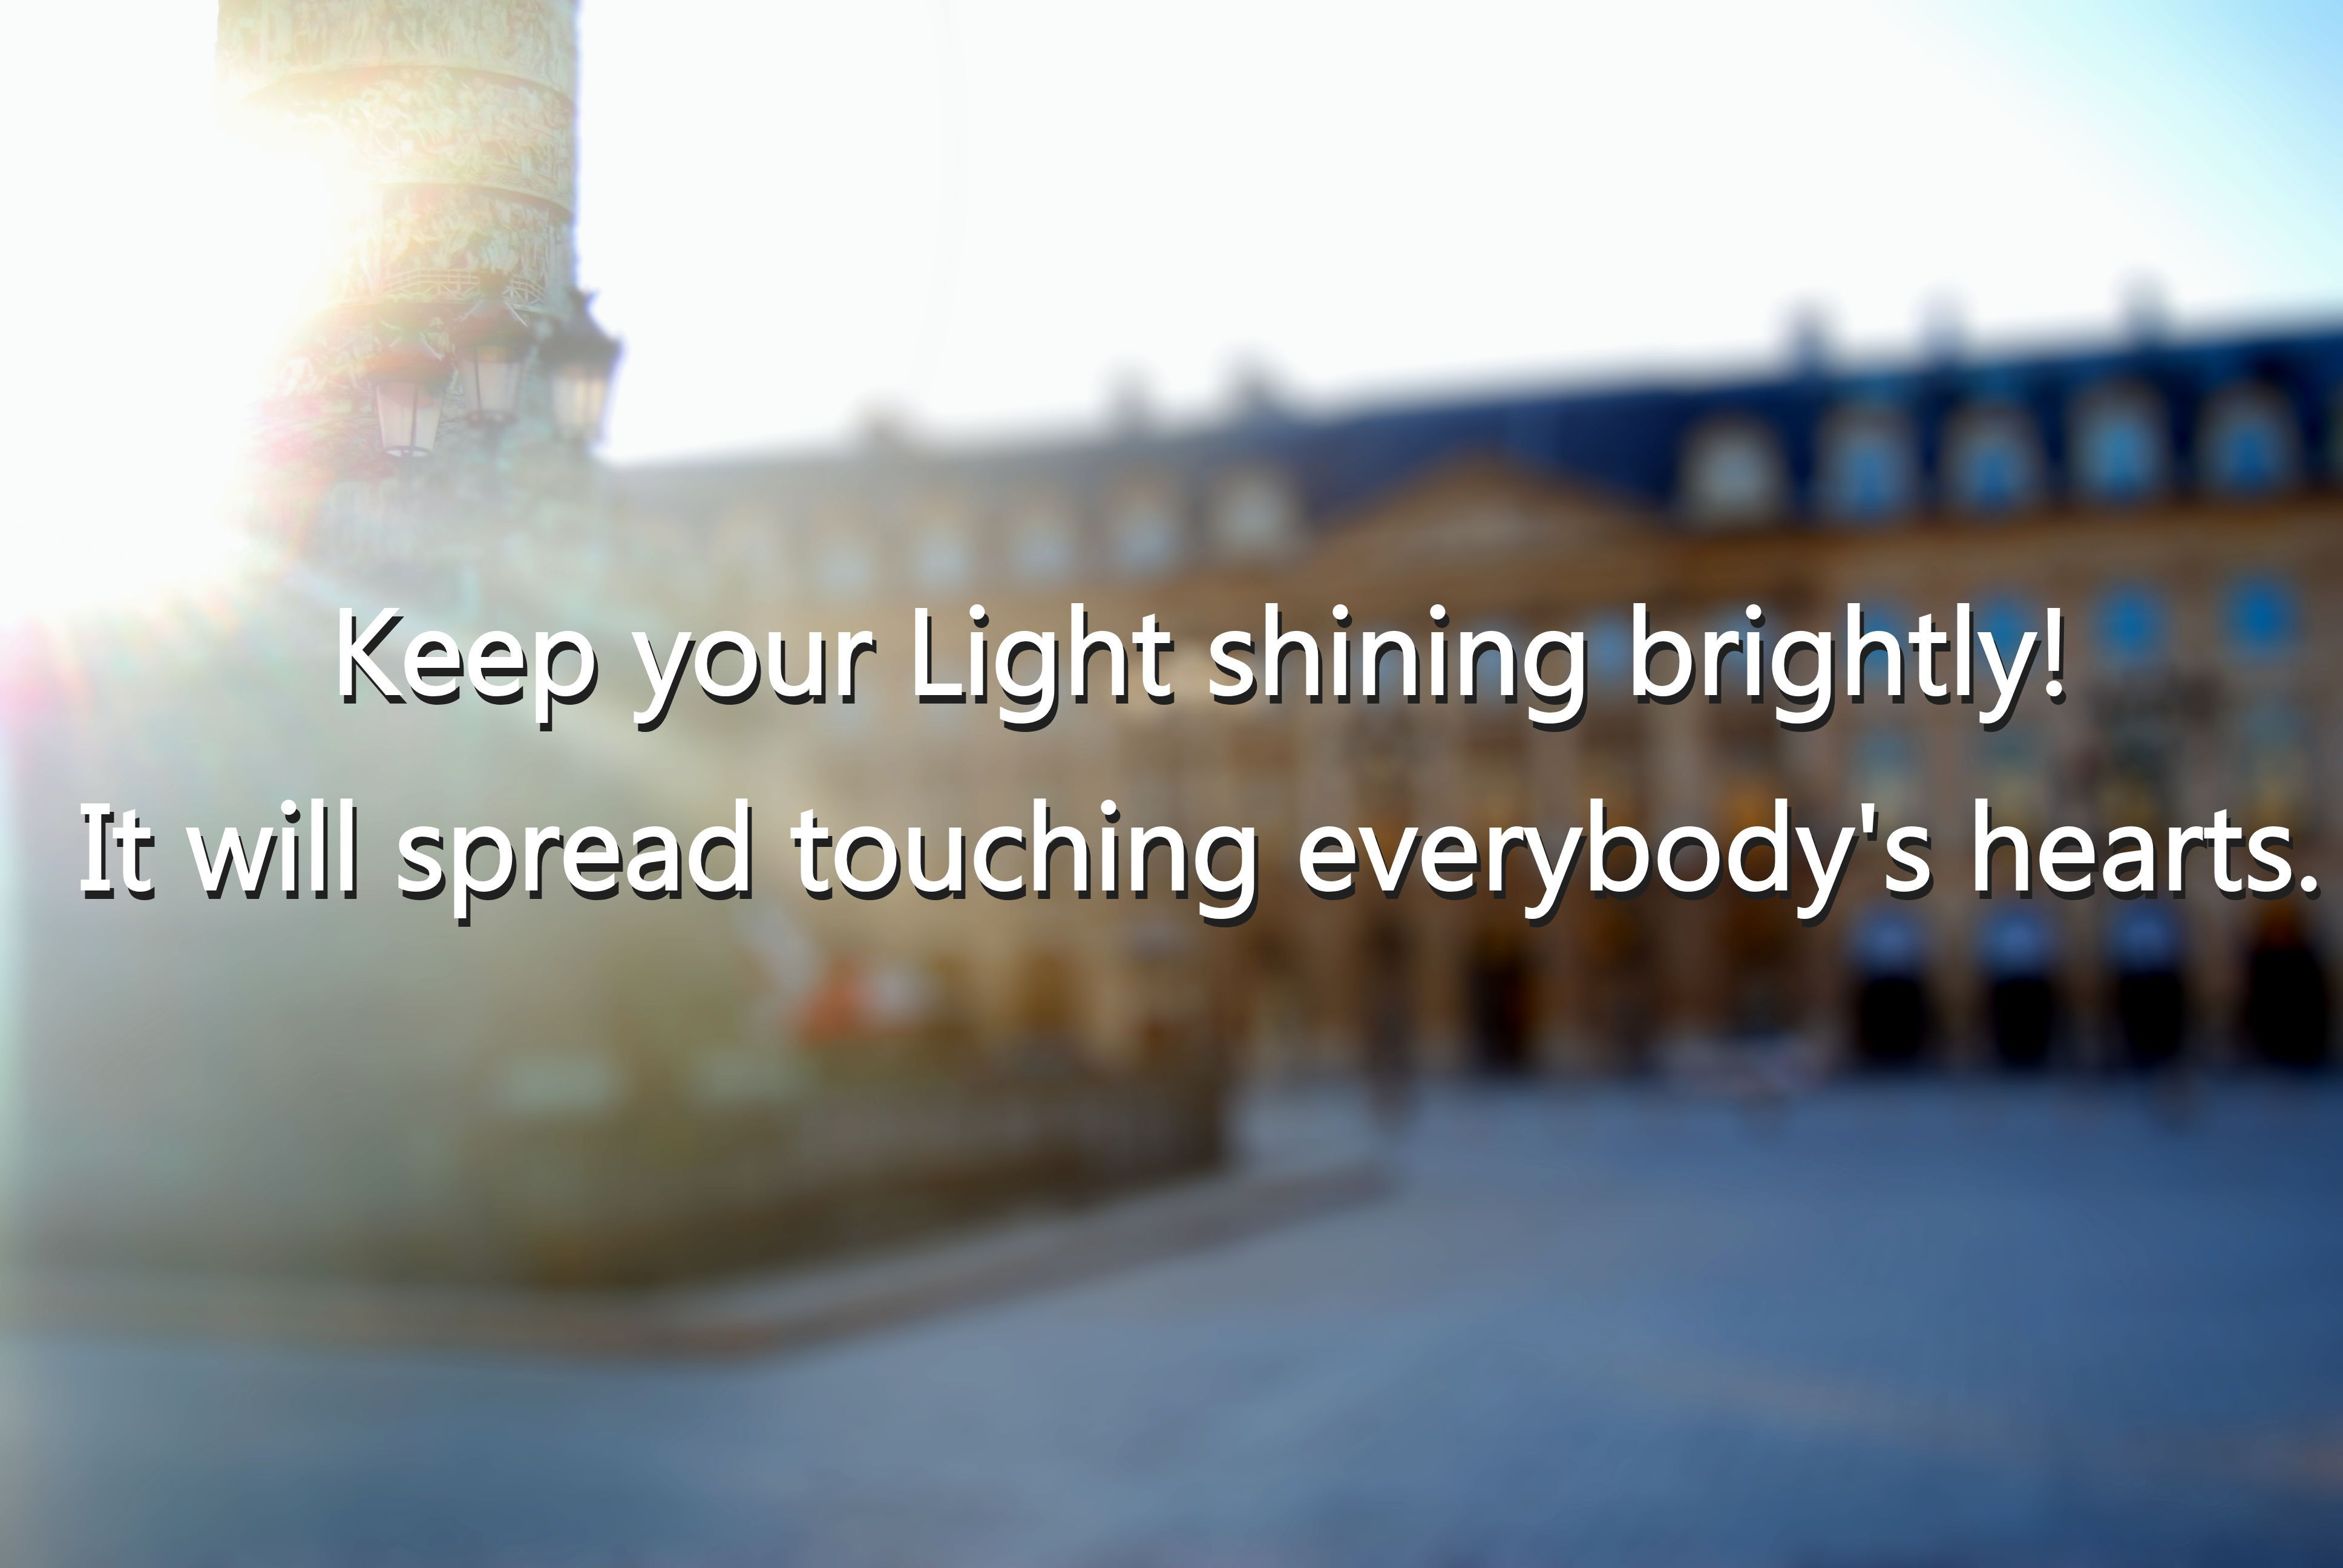 Touch the hearts with your light